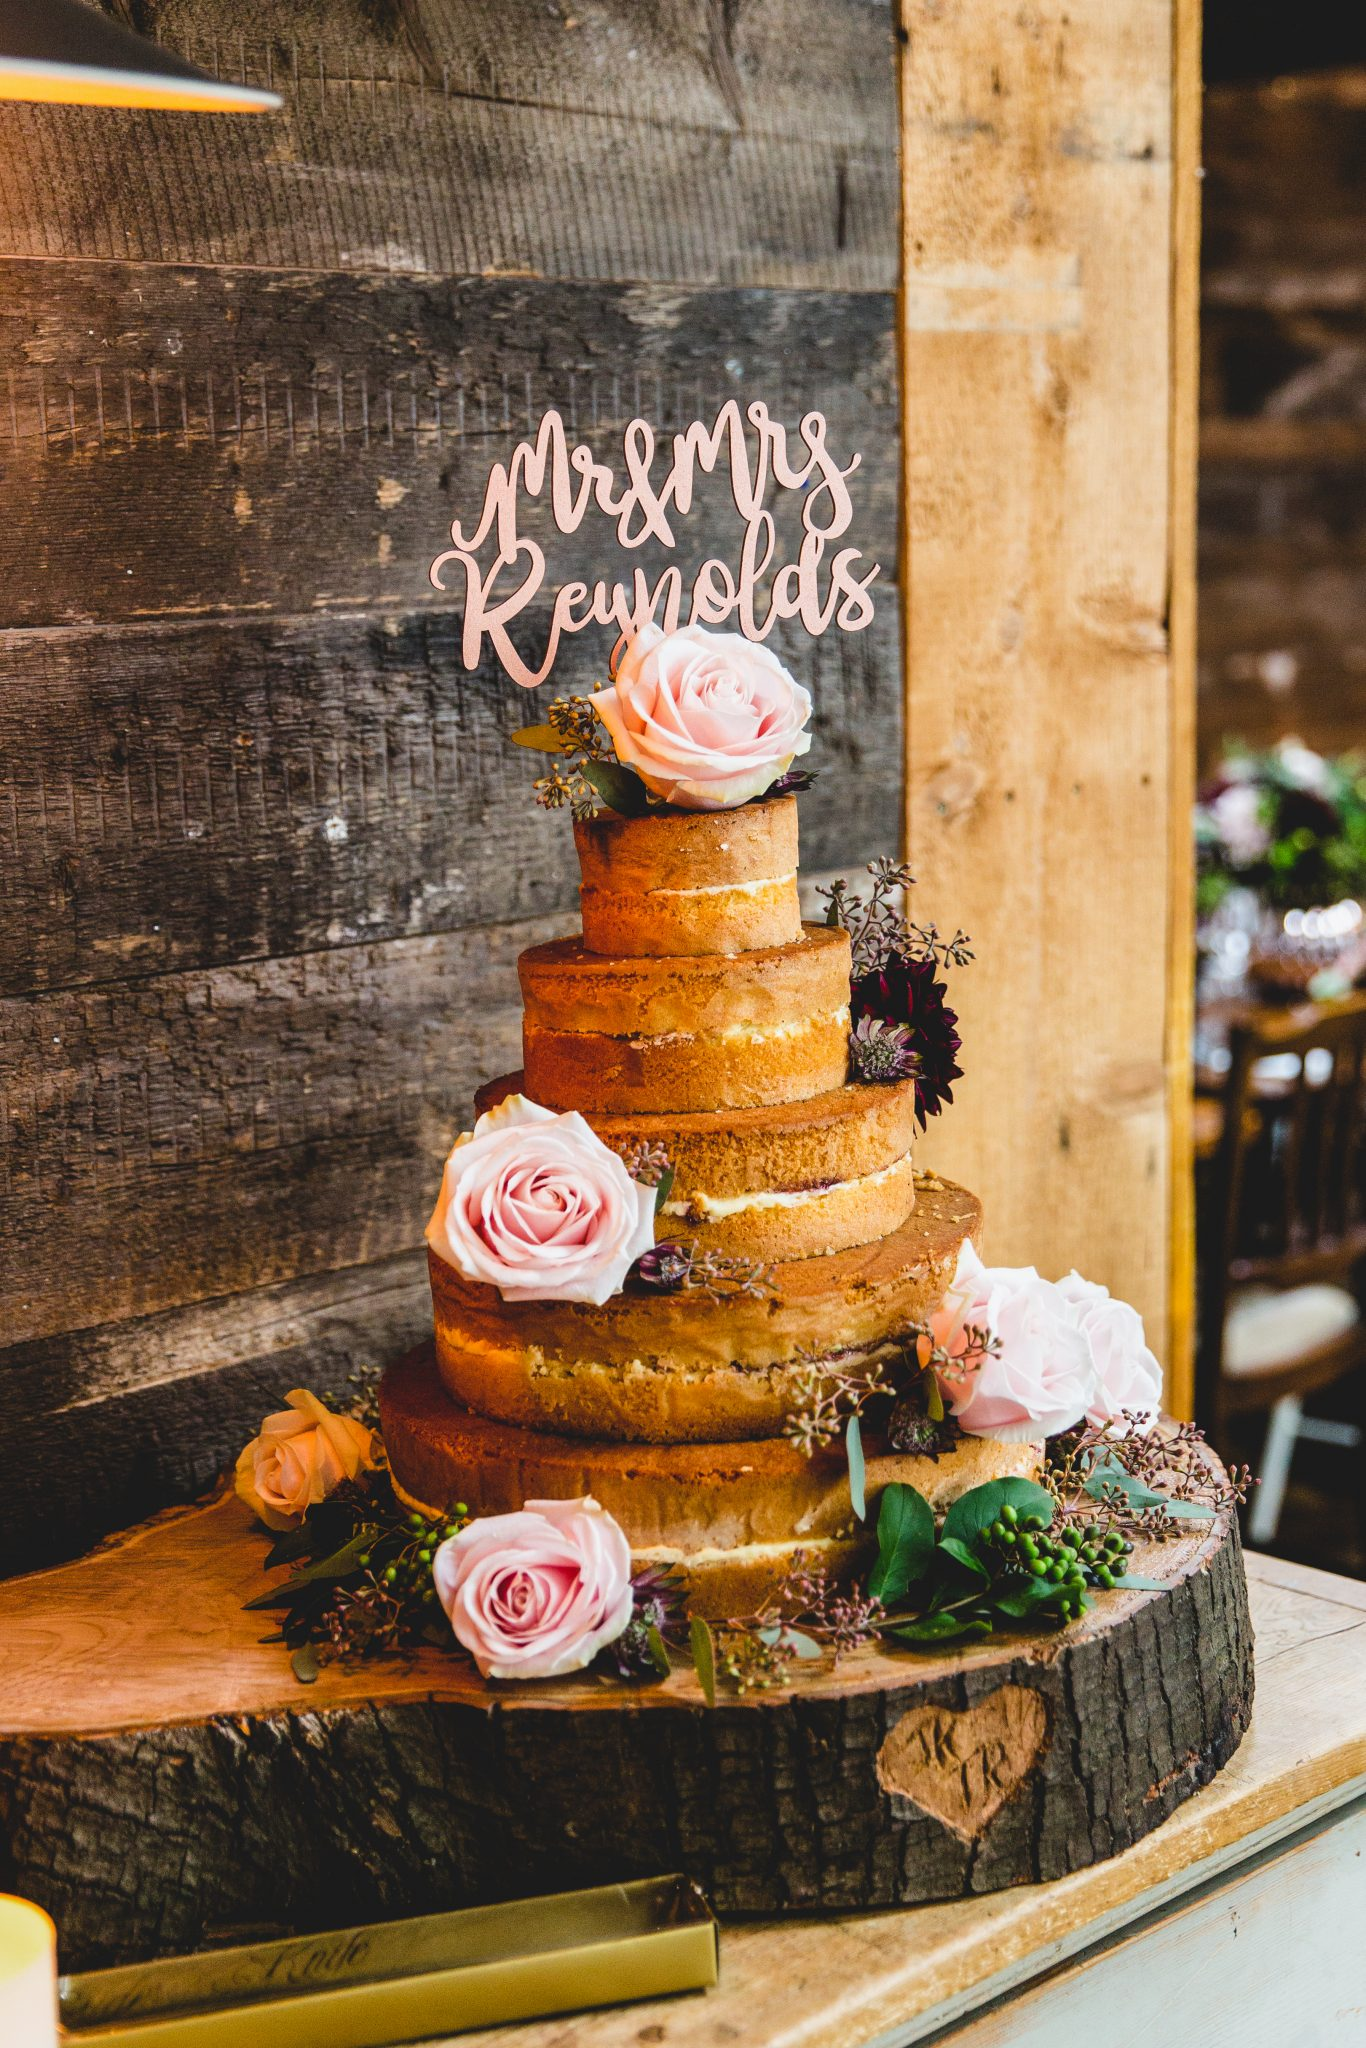 wedding cake at the frog and wicket pub